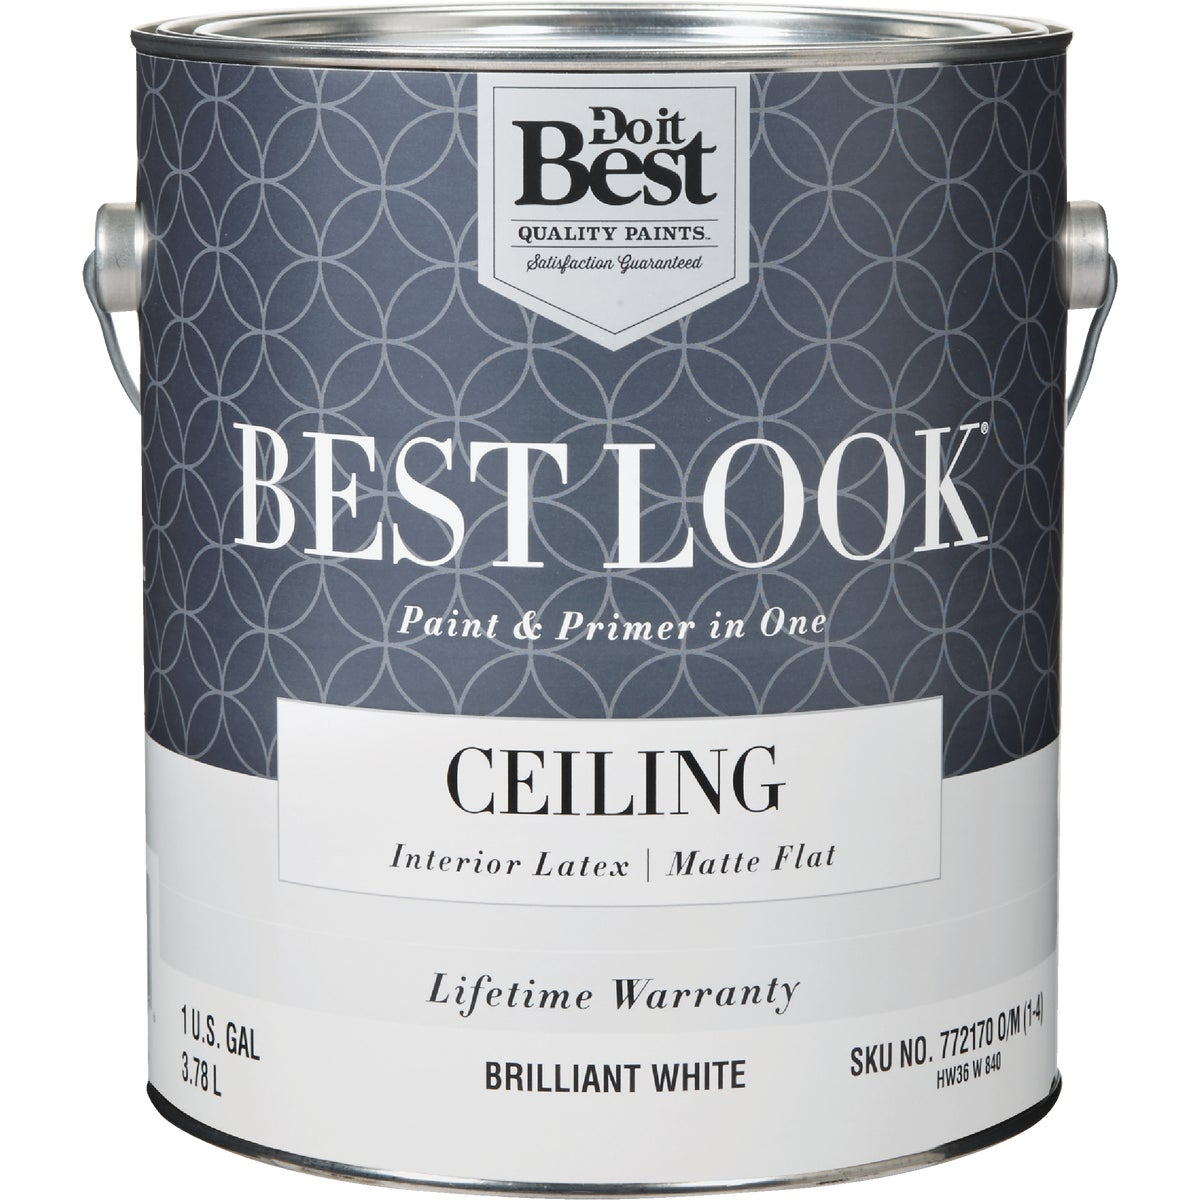 BRLNT WHT CEILING PAINT - HW36W0840-16 by Do it Best